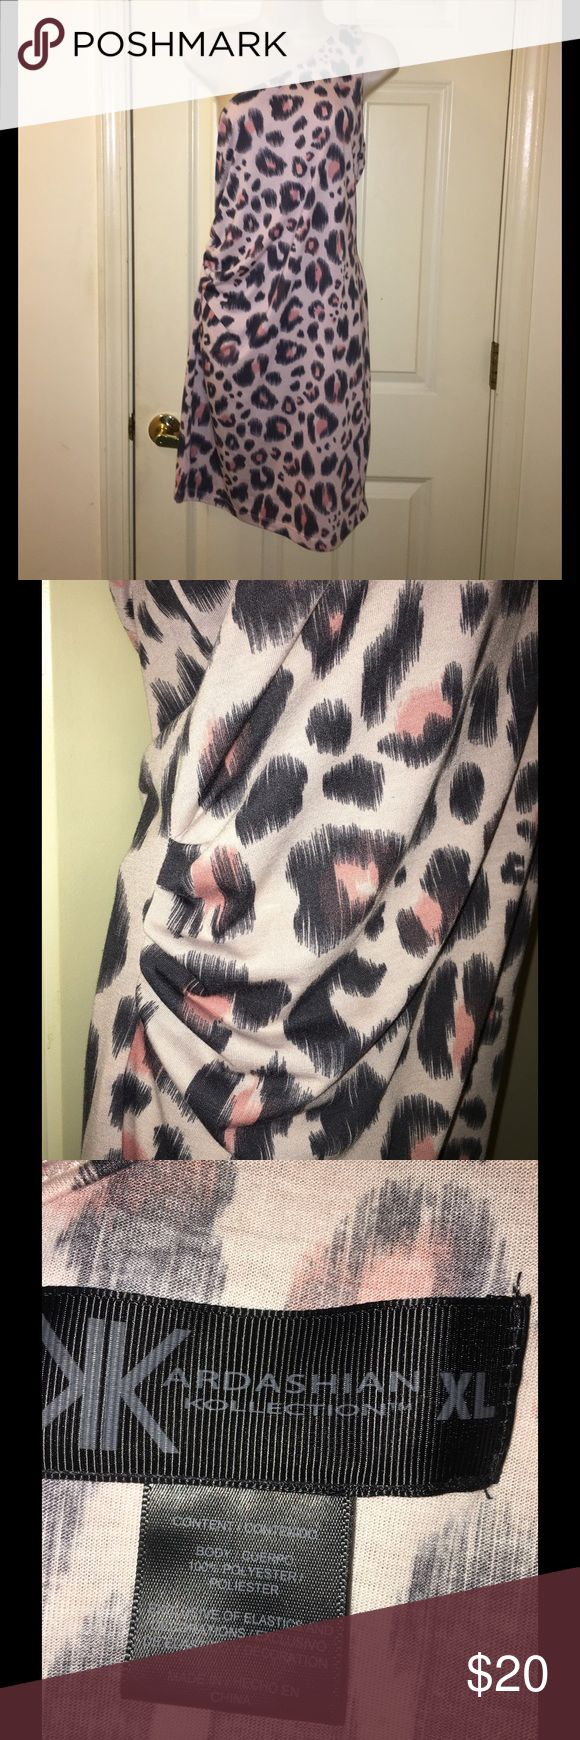 XL Pink Animal Print Dress Kardashian Kollection Pink animal print dress.  Bodycon style with side rucked waist.  One shoulder. Size XL. Kardashian Kollection.  Great condition.  Important:   All items are freshly laundered as applicable prior to shipping (new items and shoes excluded).  Not all my items are from pet/smoke free homes.  Price is reduced to reflect this!   Thank you for looking! Kardashian Kollection Dresses One Shoulder